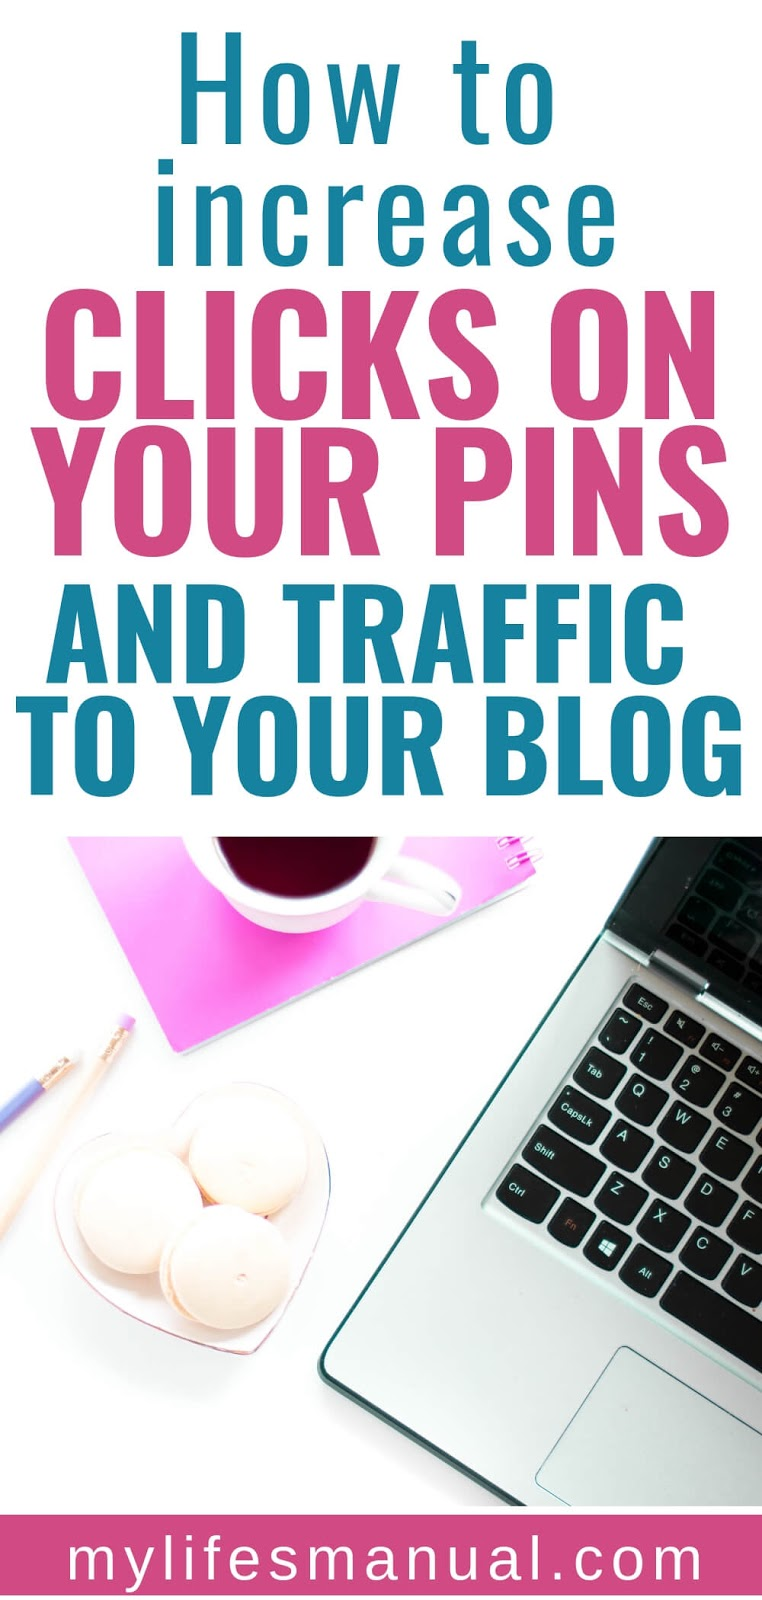 How to increase clicks on your pins. Pinterest for bloggers.